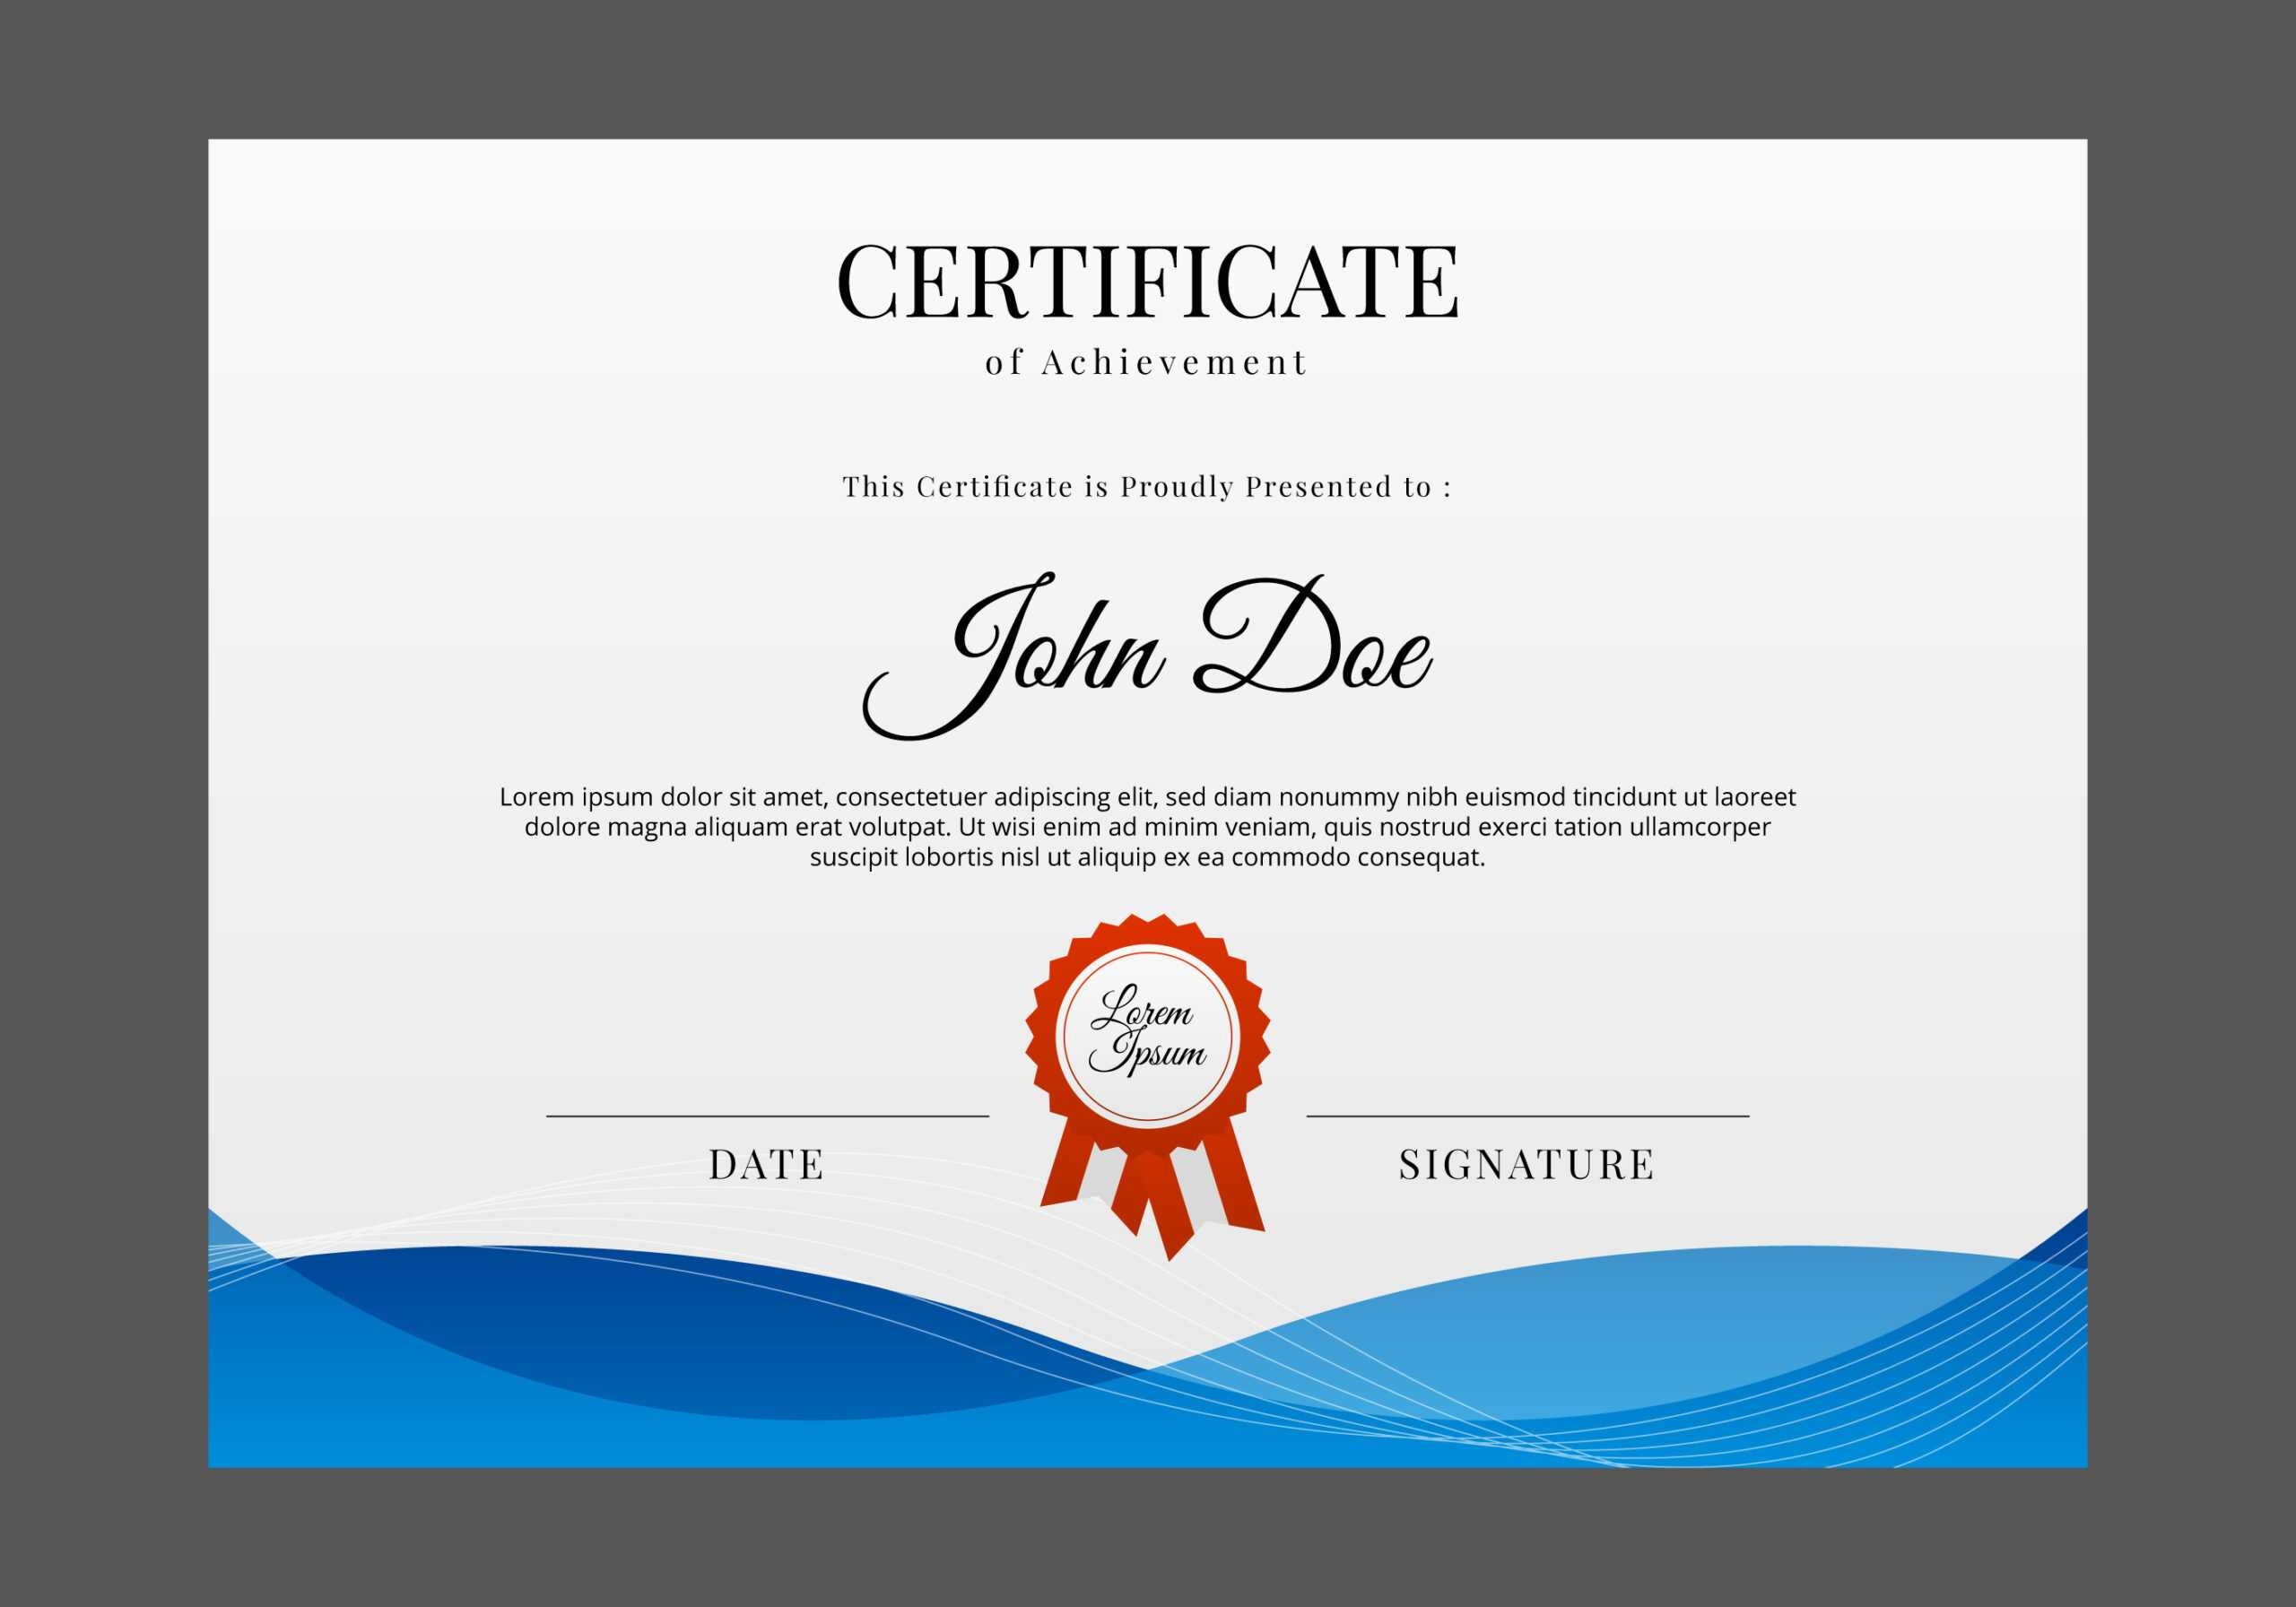 Certificate Templates, Free Certificate Designs Throughout Professional Certificate Templates For Word